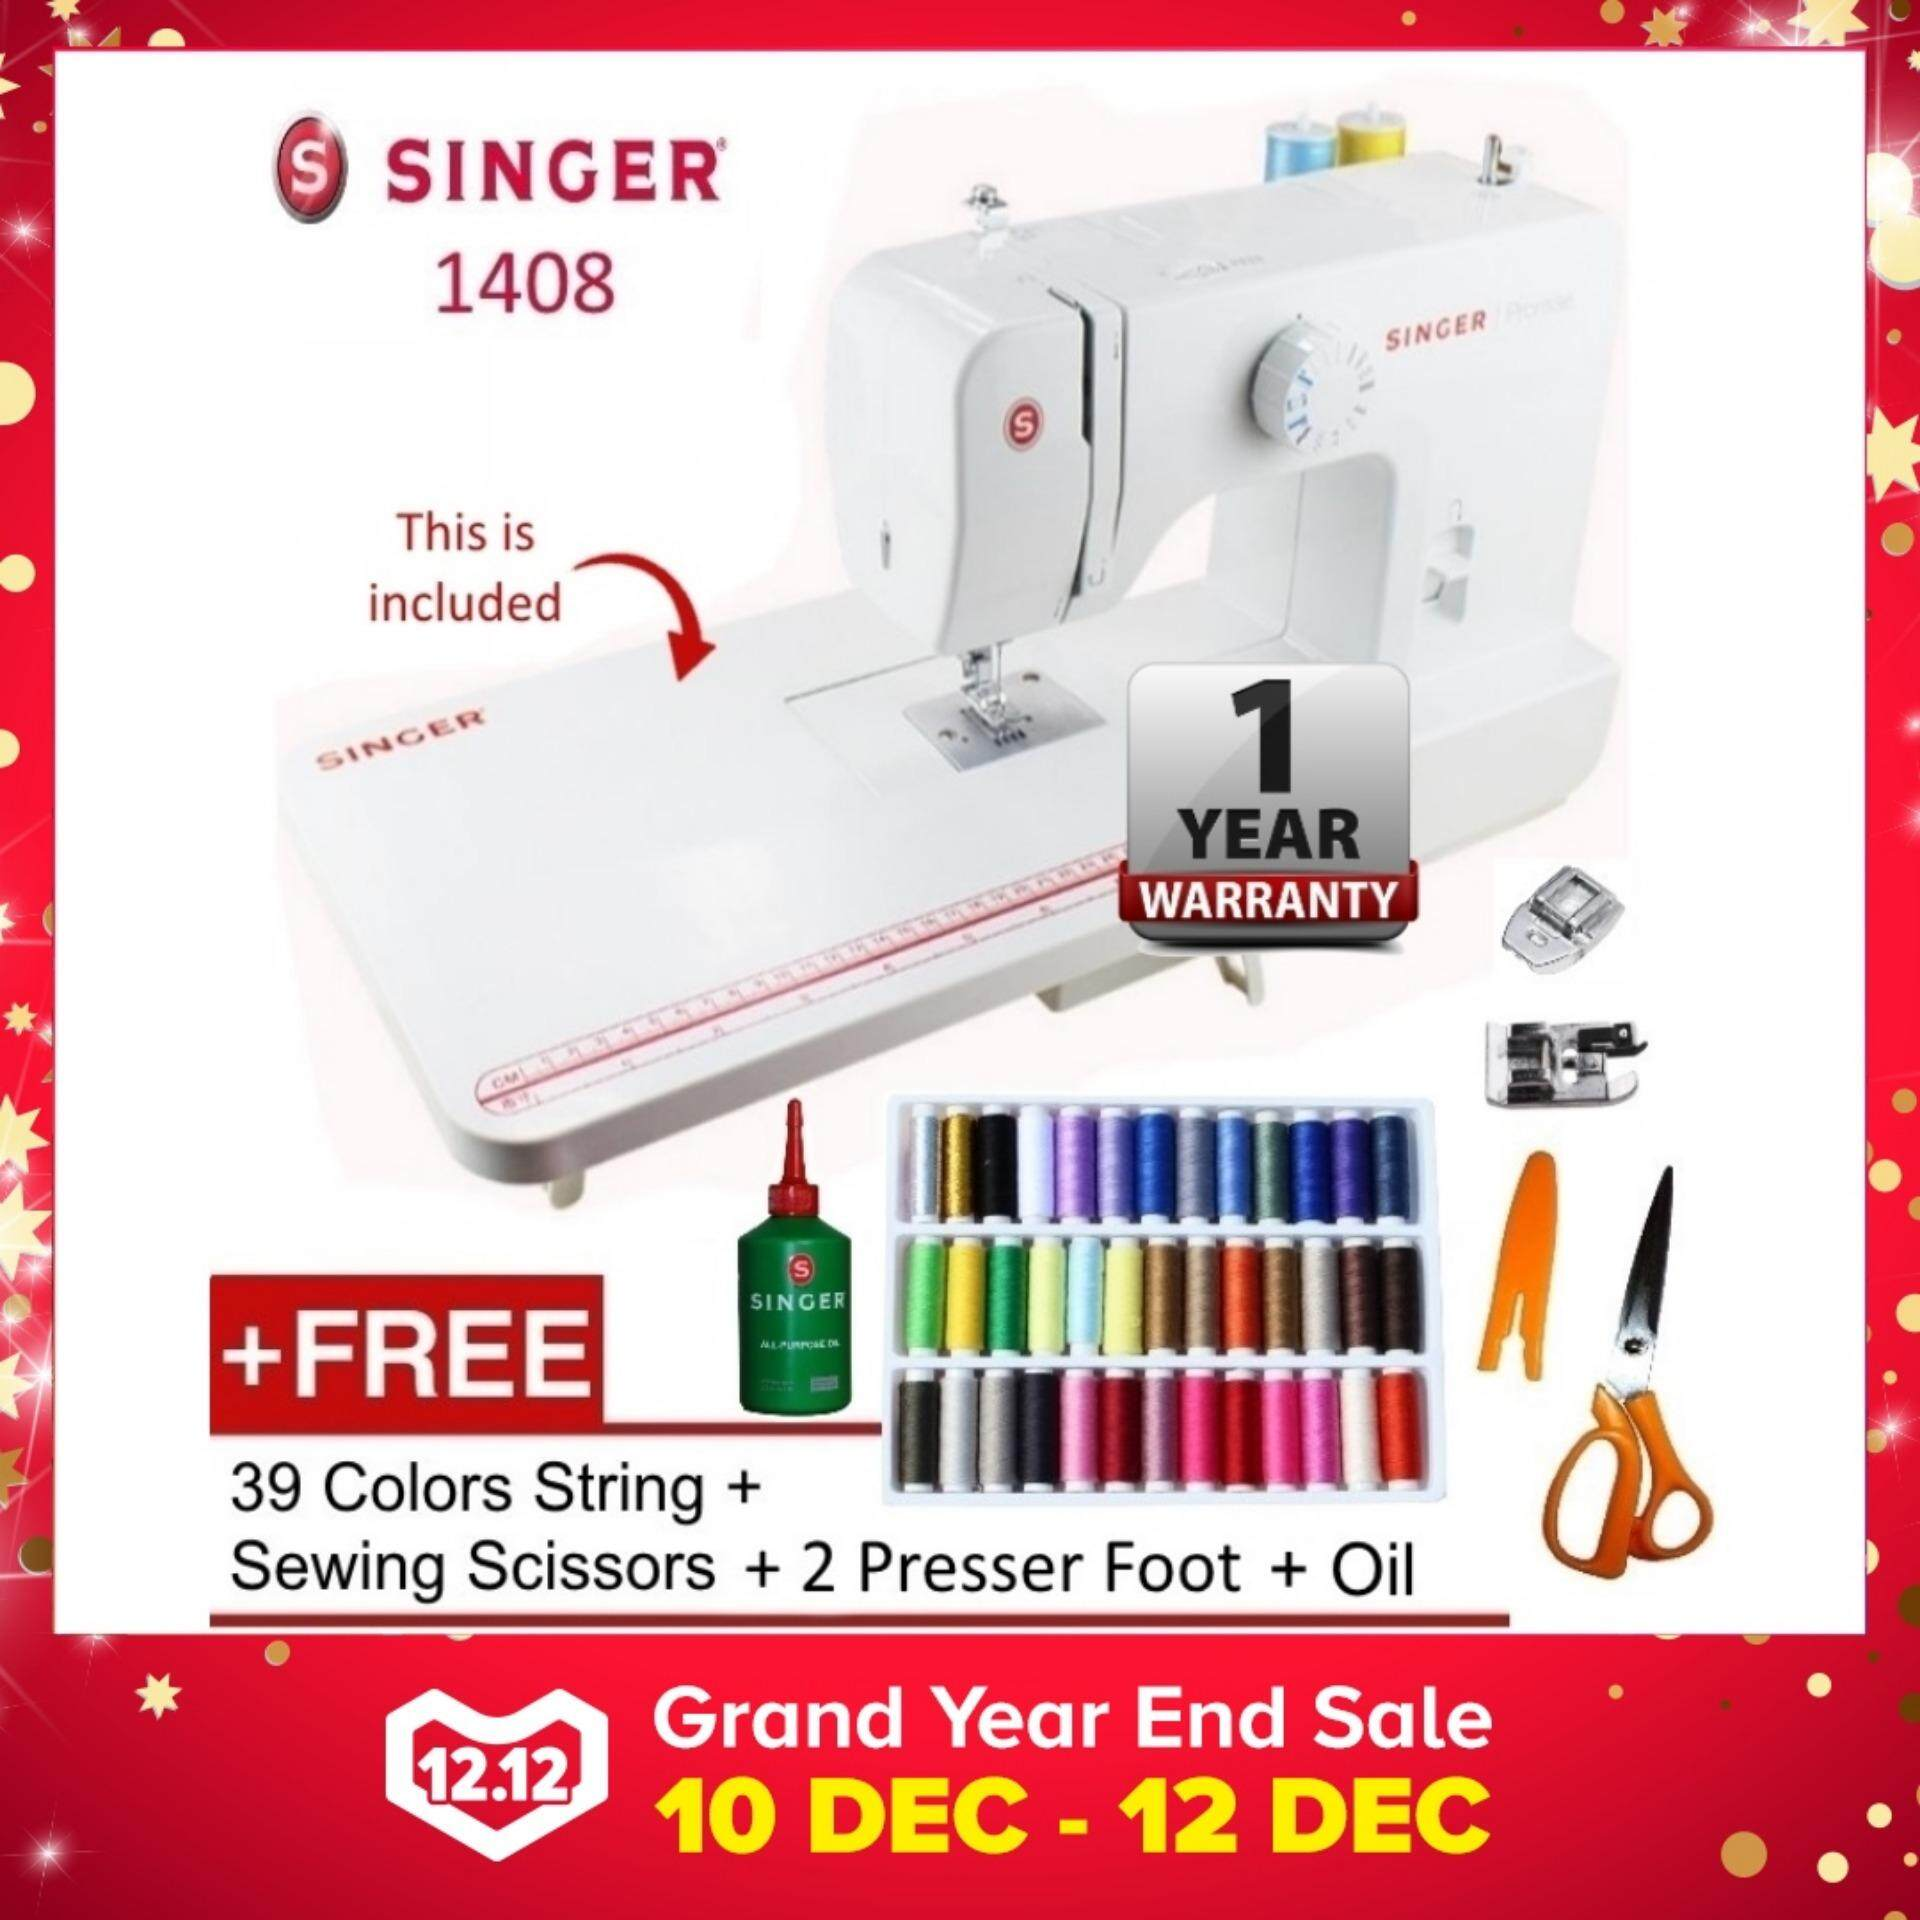 Singer Sewing Machines Price In Malaysia Best Mesin Jahit Digital Portable 6660 Starlet 1408 Promise Machine Platform